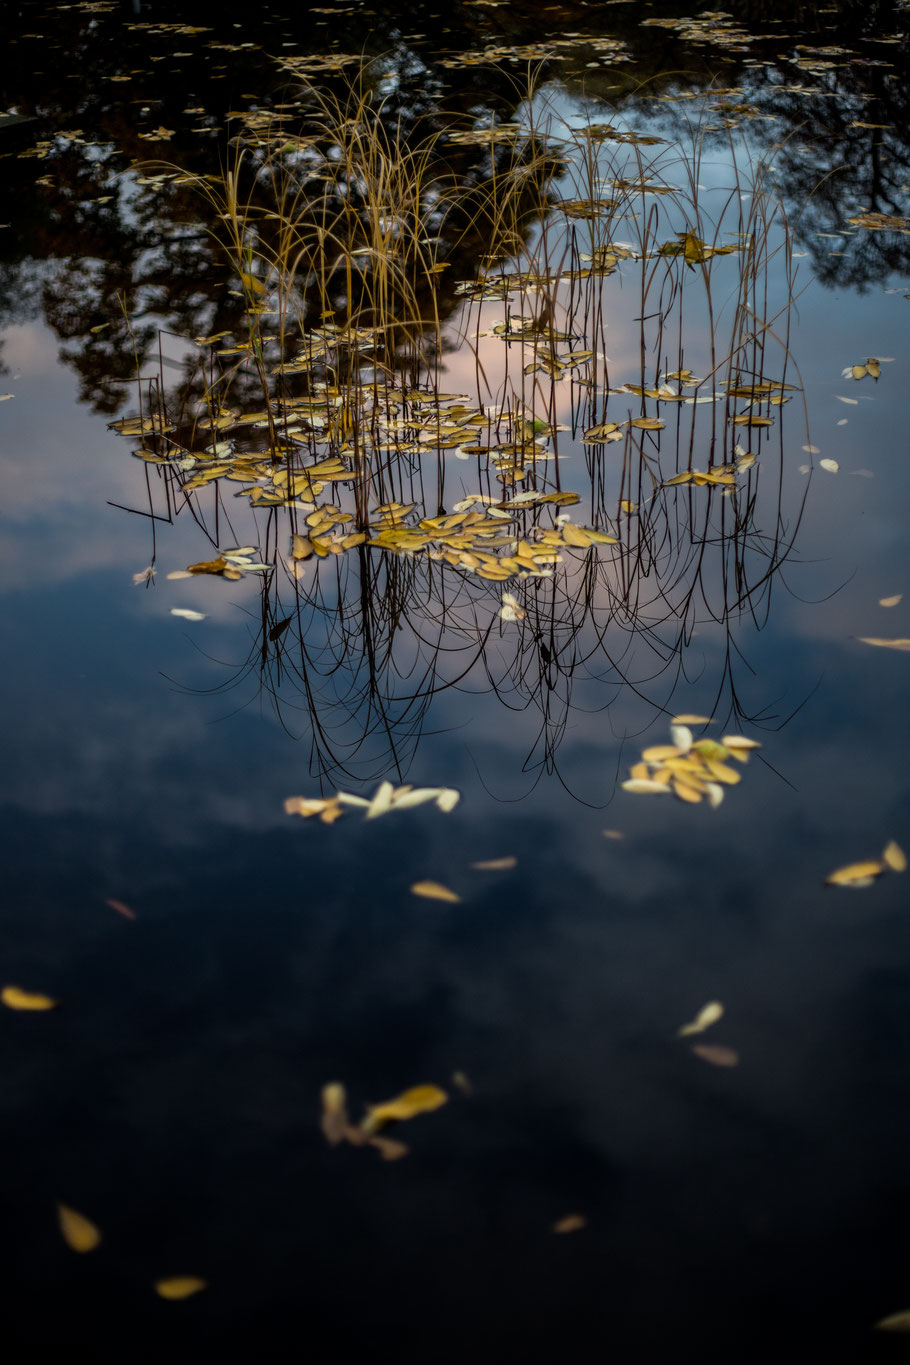 Water plants poking out of the water of a pond, yellow leaves floating on the surface. The partially cloudy sky, trees, and the water plants are reflected on the surface.